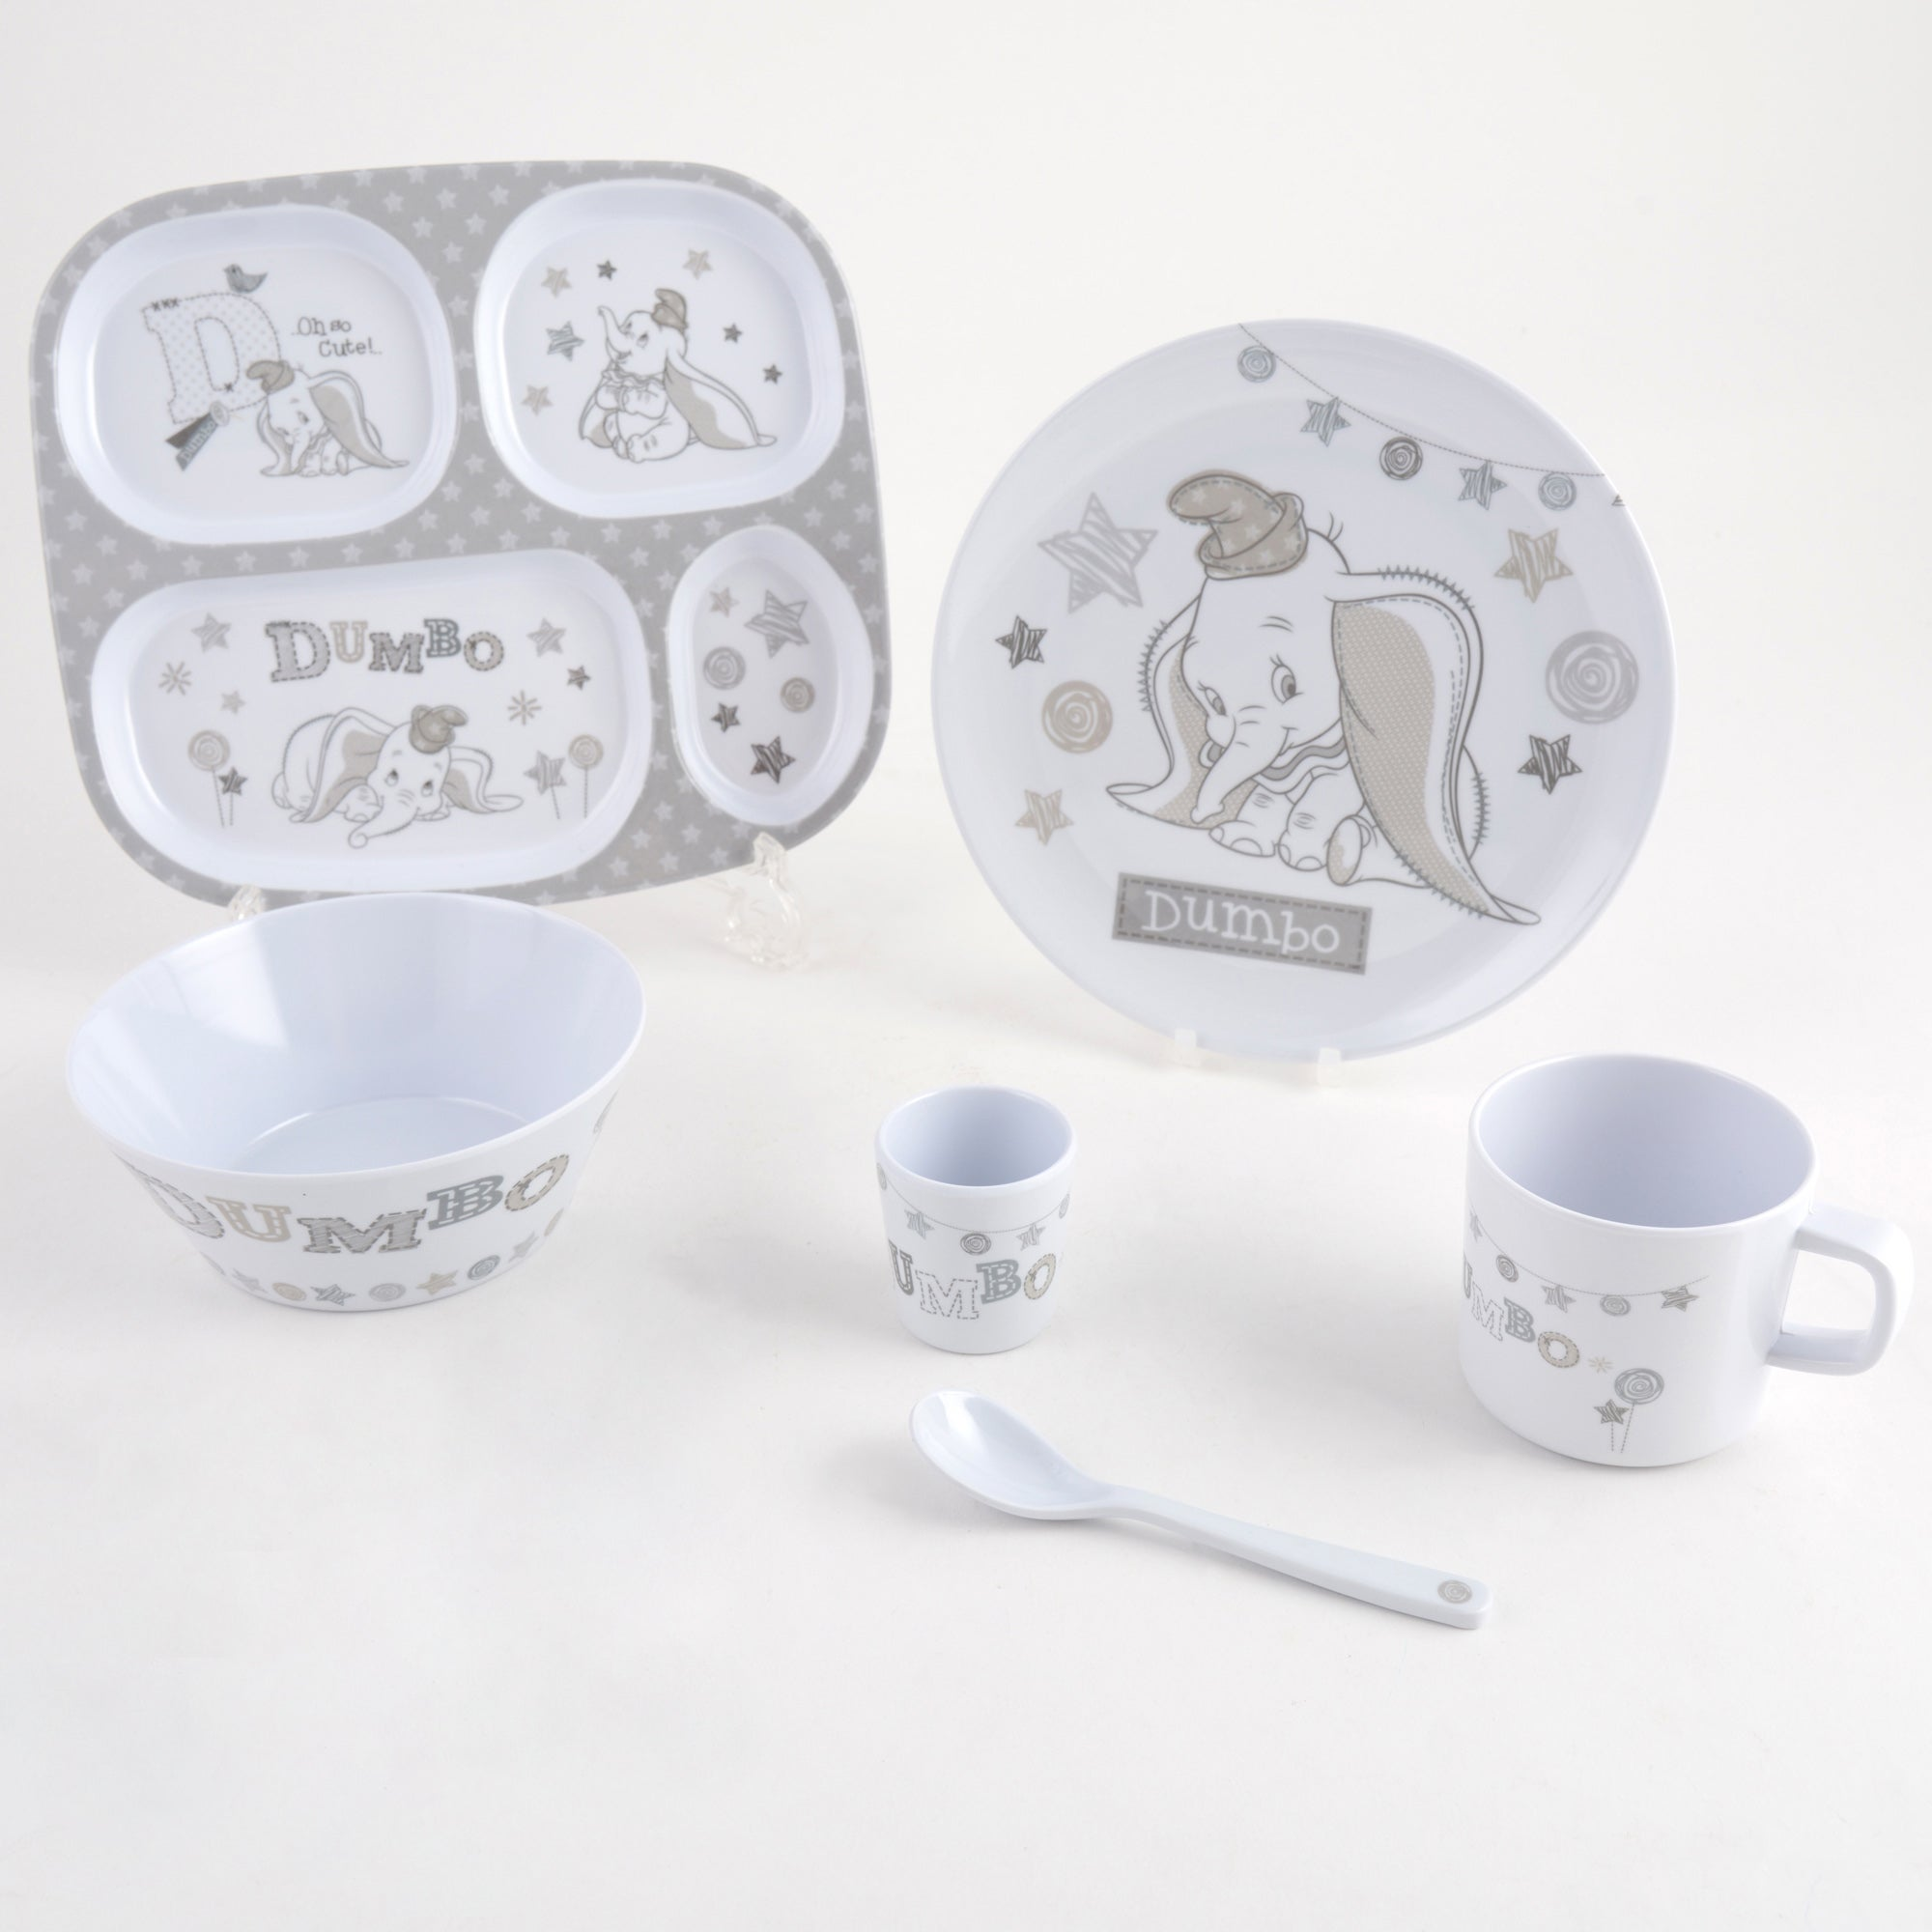 Disney Dumbo Dining Collection